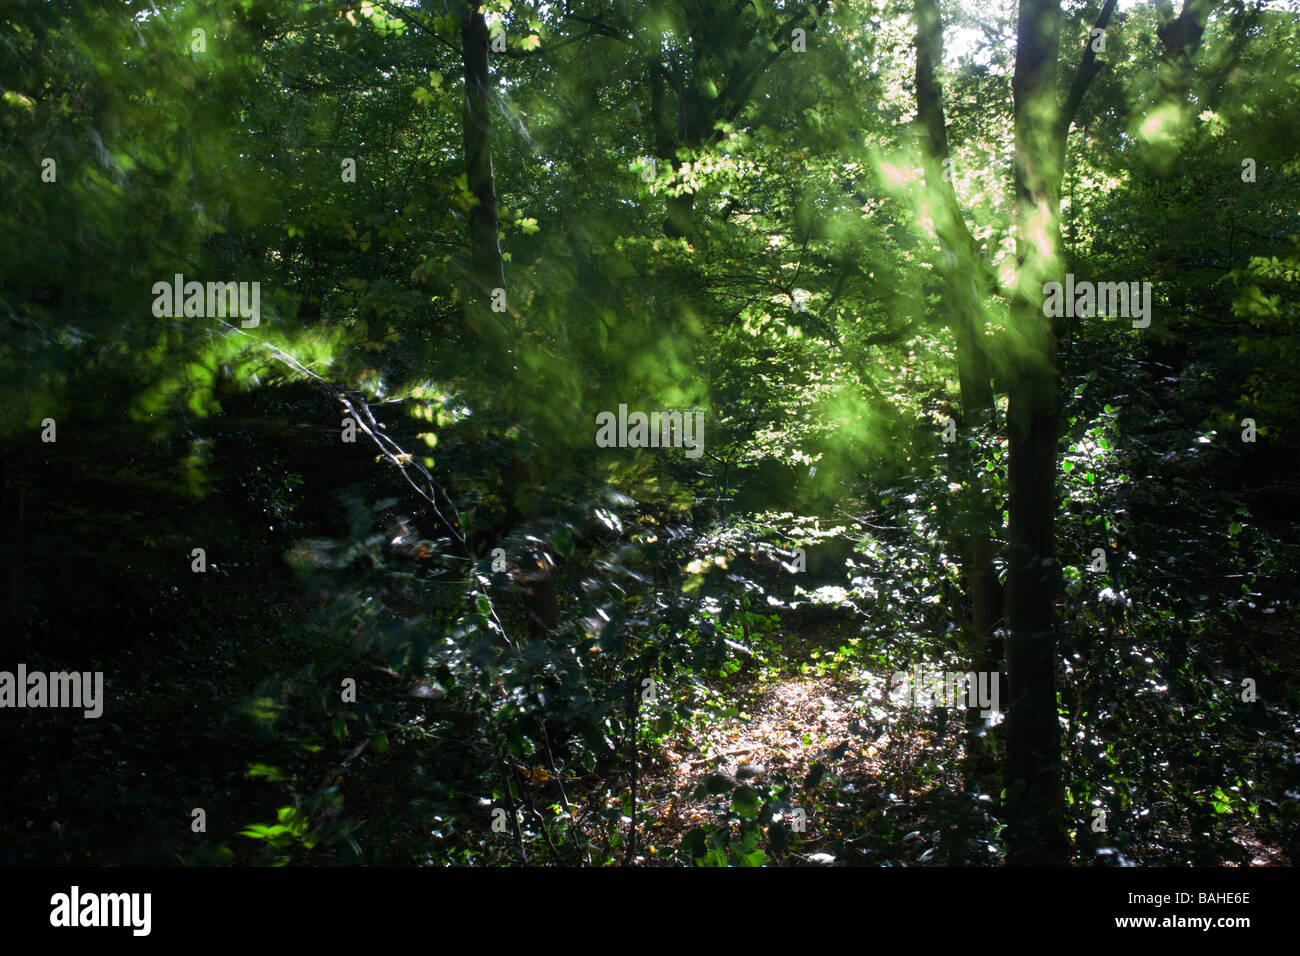 Summer sunlight filters through the old boughs and green foliage of healthy beech trees in the ancient forest of - Stock Image